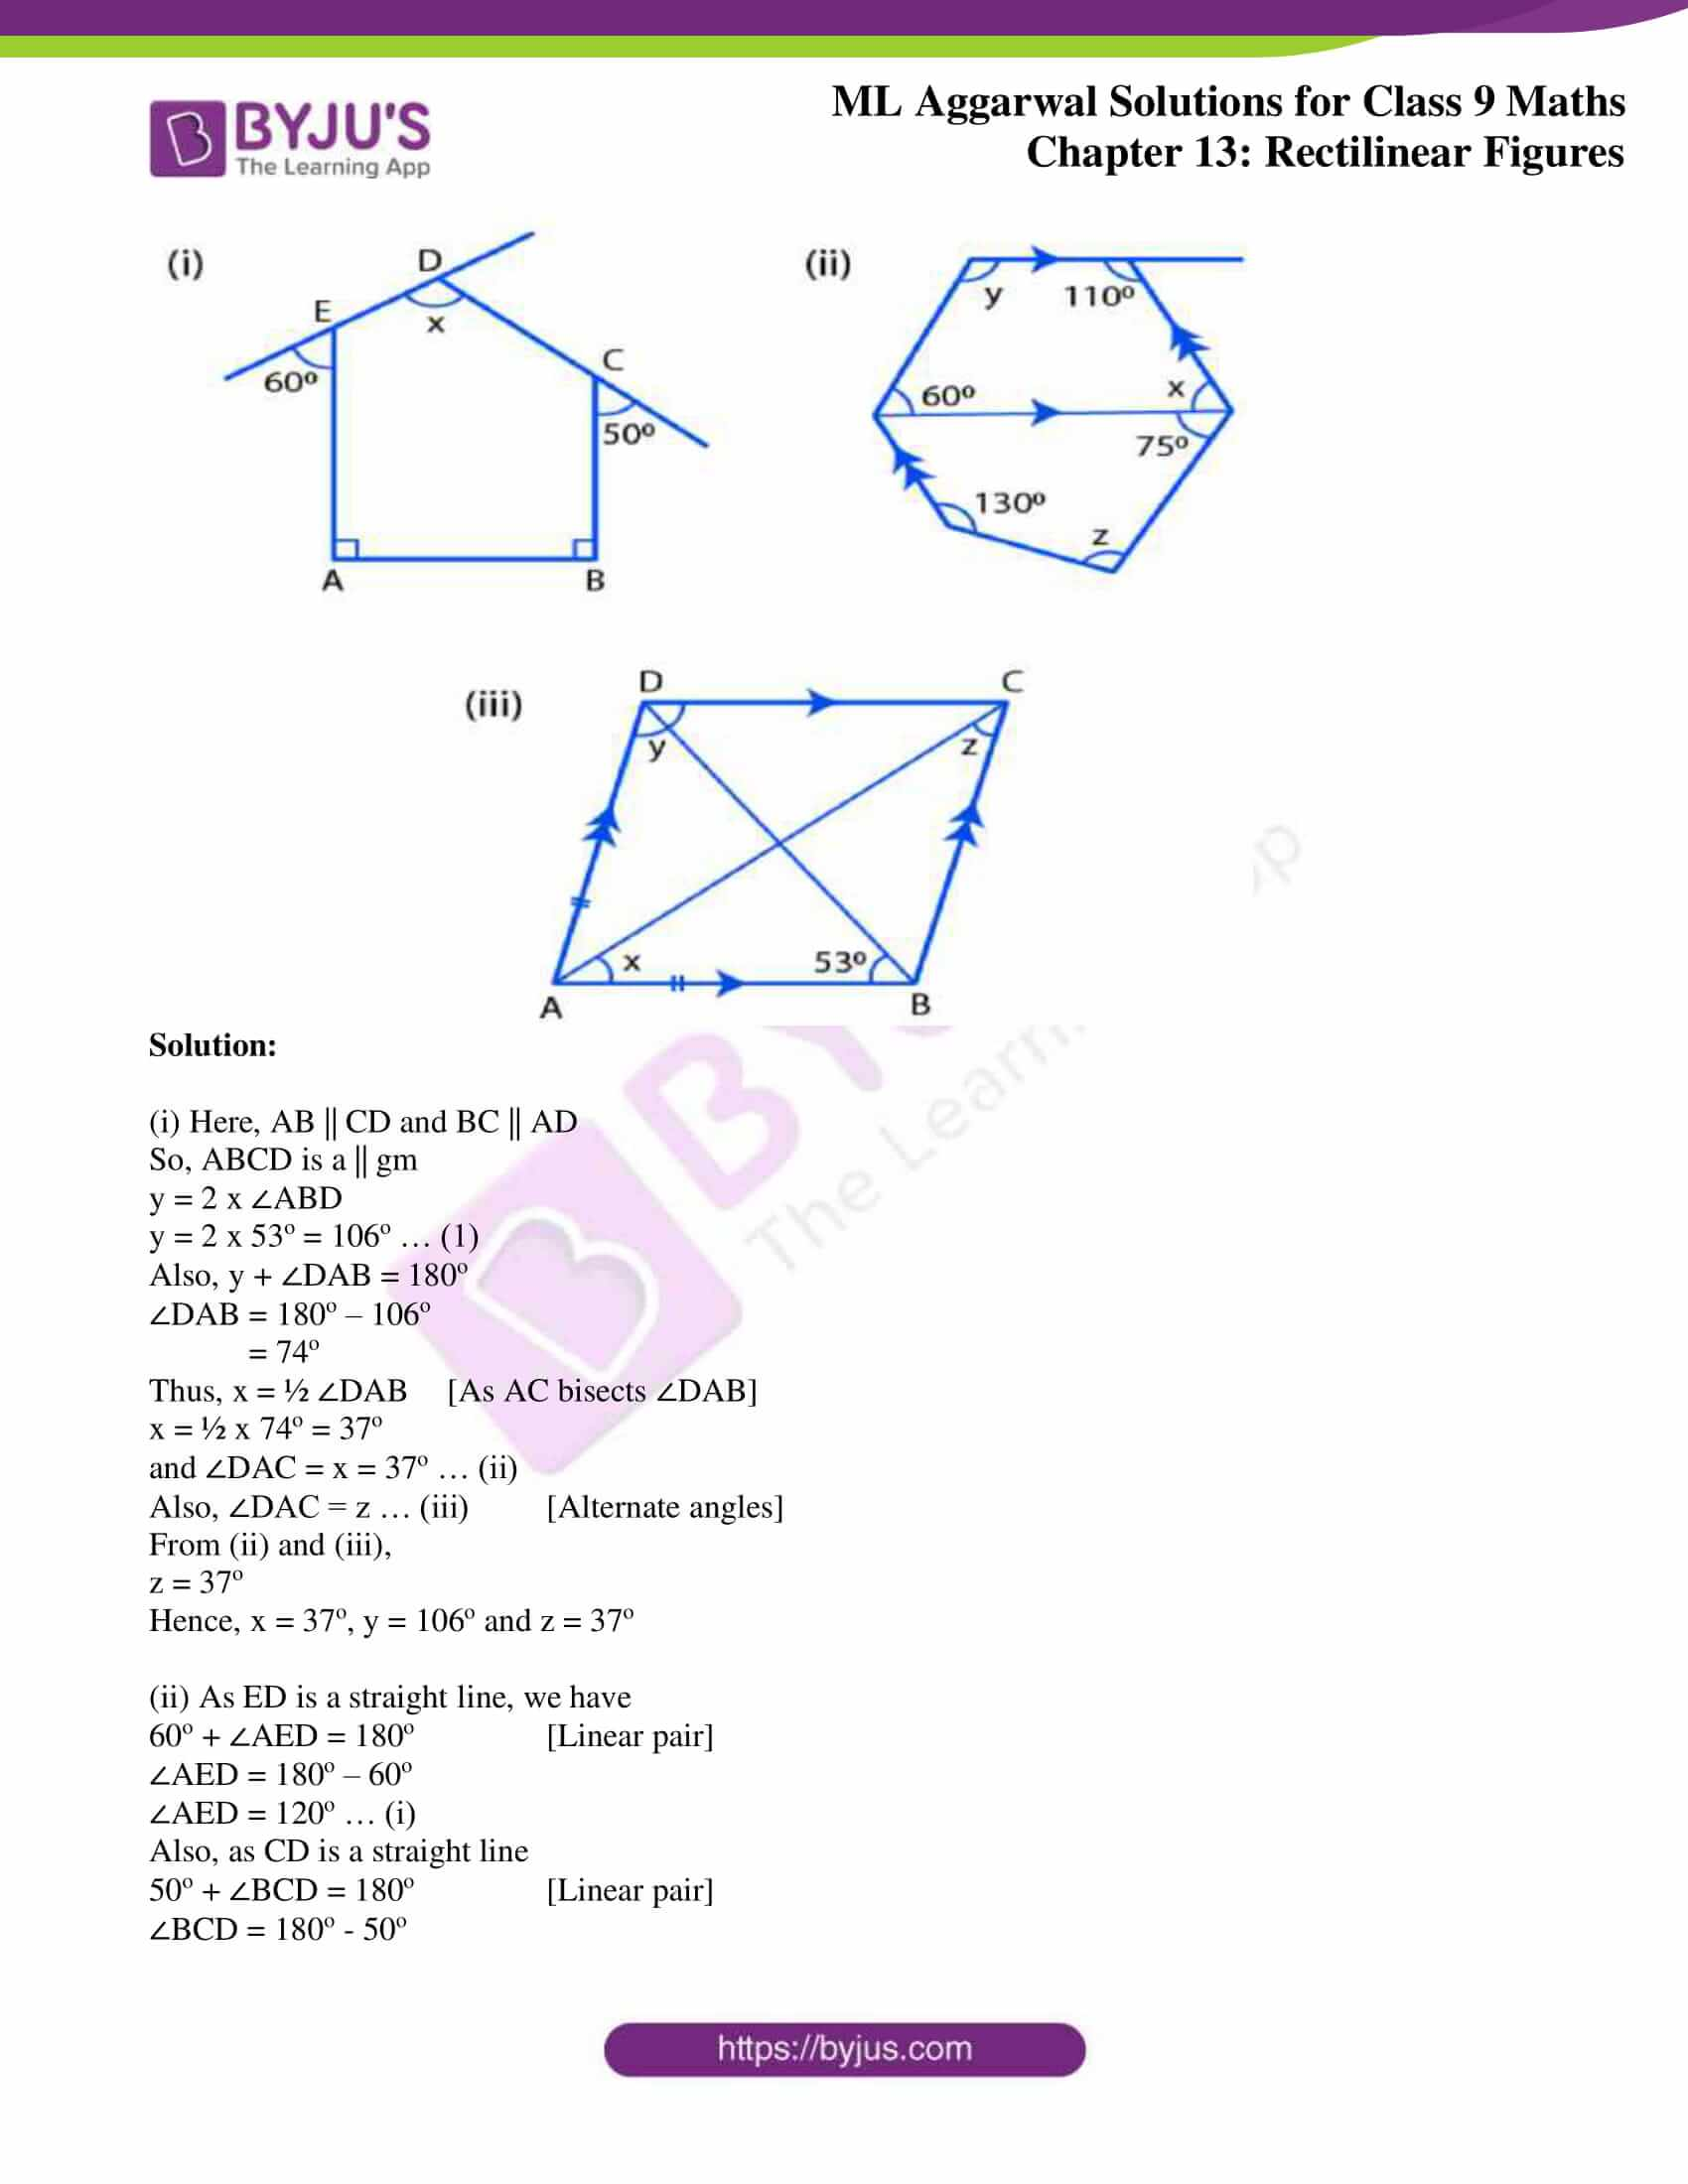 ml aggarwal solutions for class 9 maths chapter 13 43